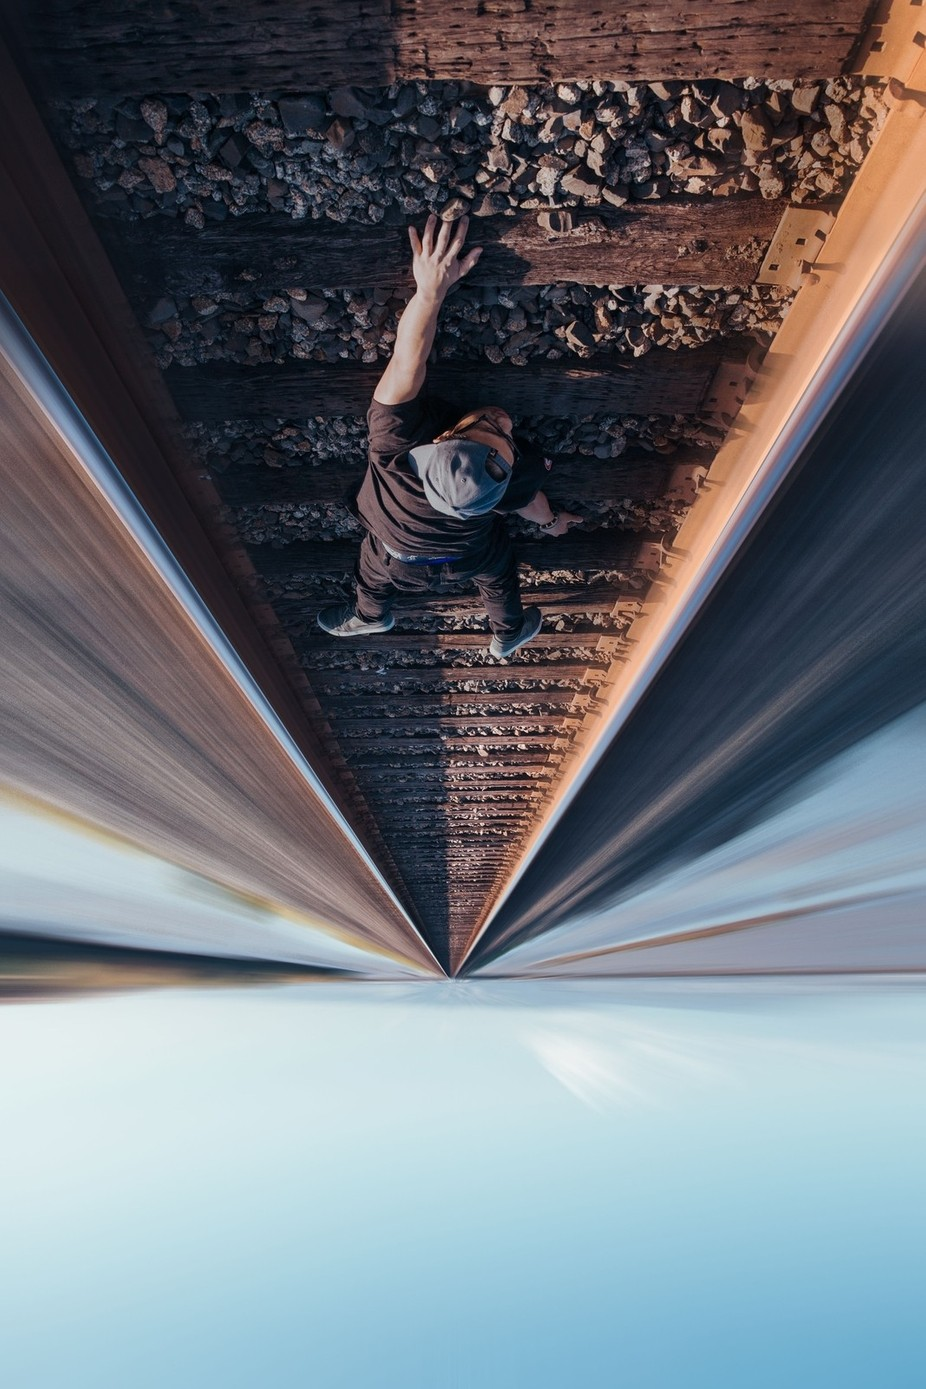 Be Creative by jayibarra - Clever Angles Photo Contest